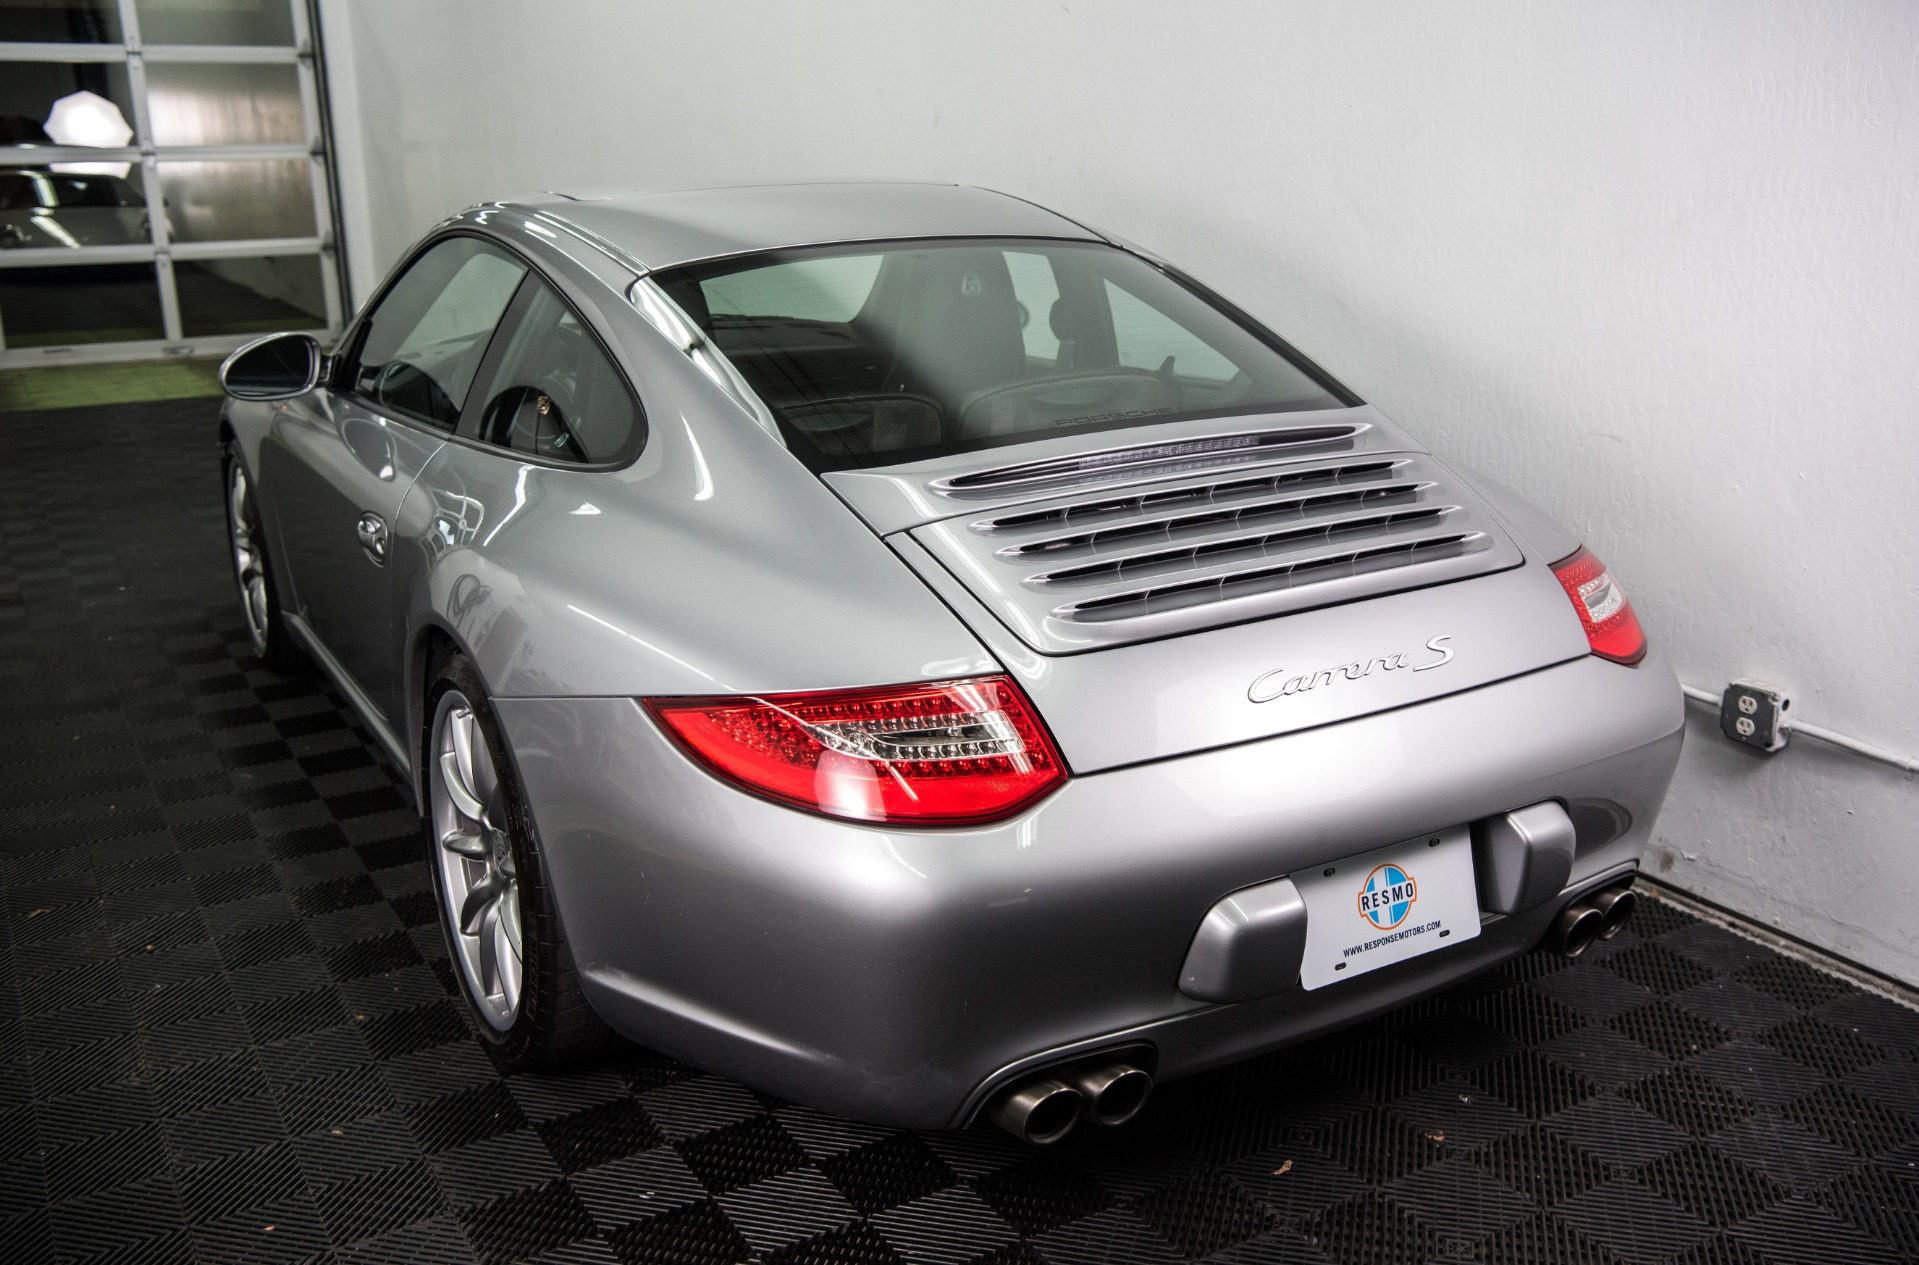 Used 2010 Porsche 911 Carrera S Used 2010 Porsche 911 Carrera S for sale Sold at Response Motors in Mountain View CA 8